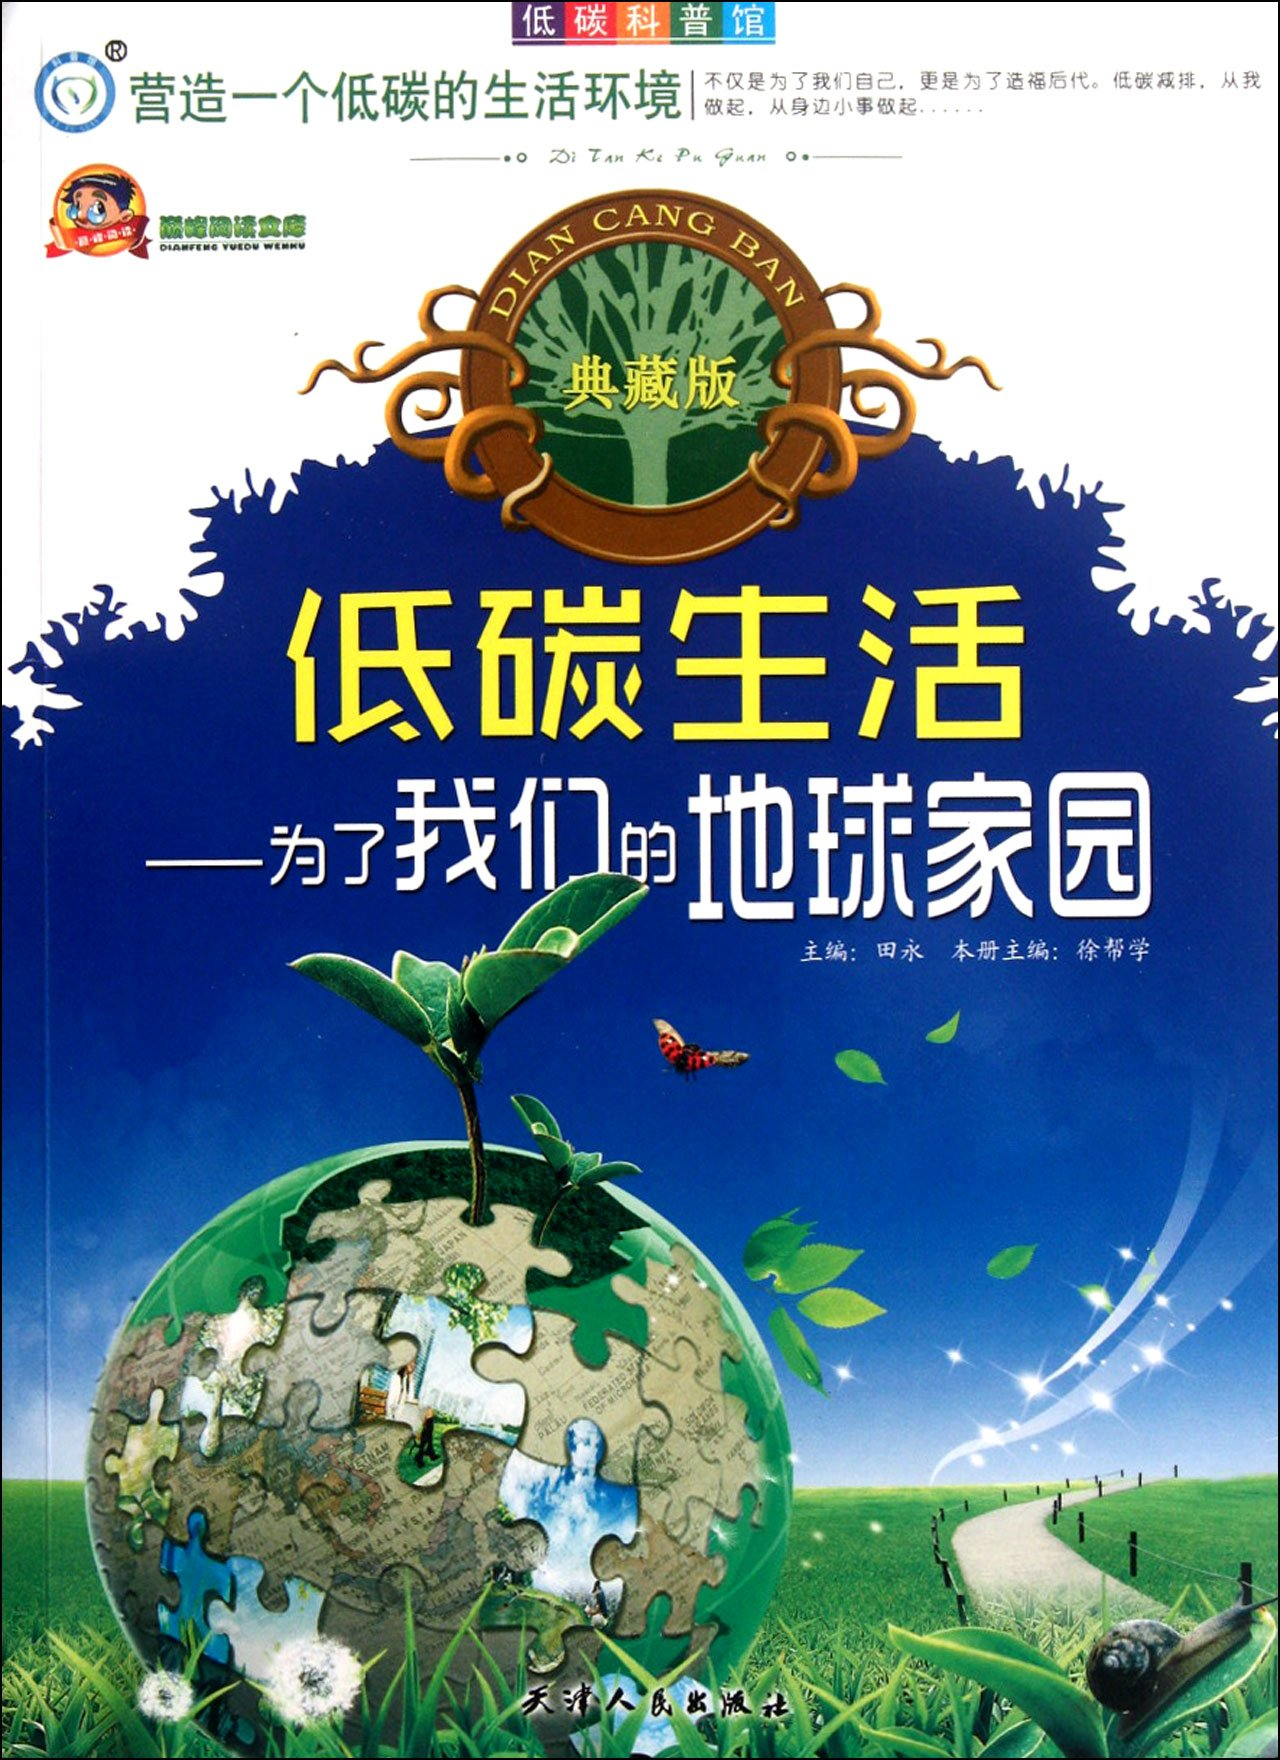 Download Low Carbon Life - For Our Earth - - Collectors Edition (Chinese Edition) ebook